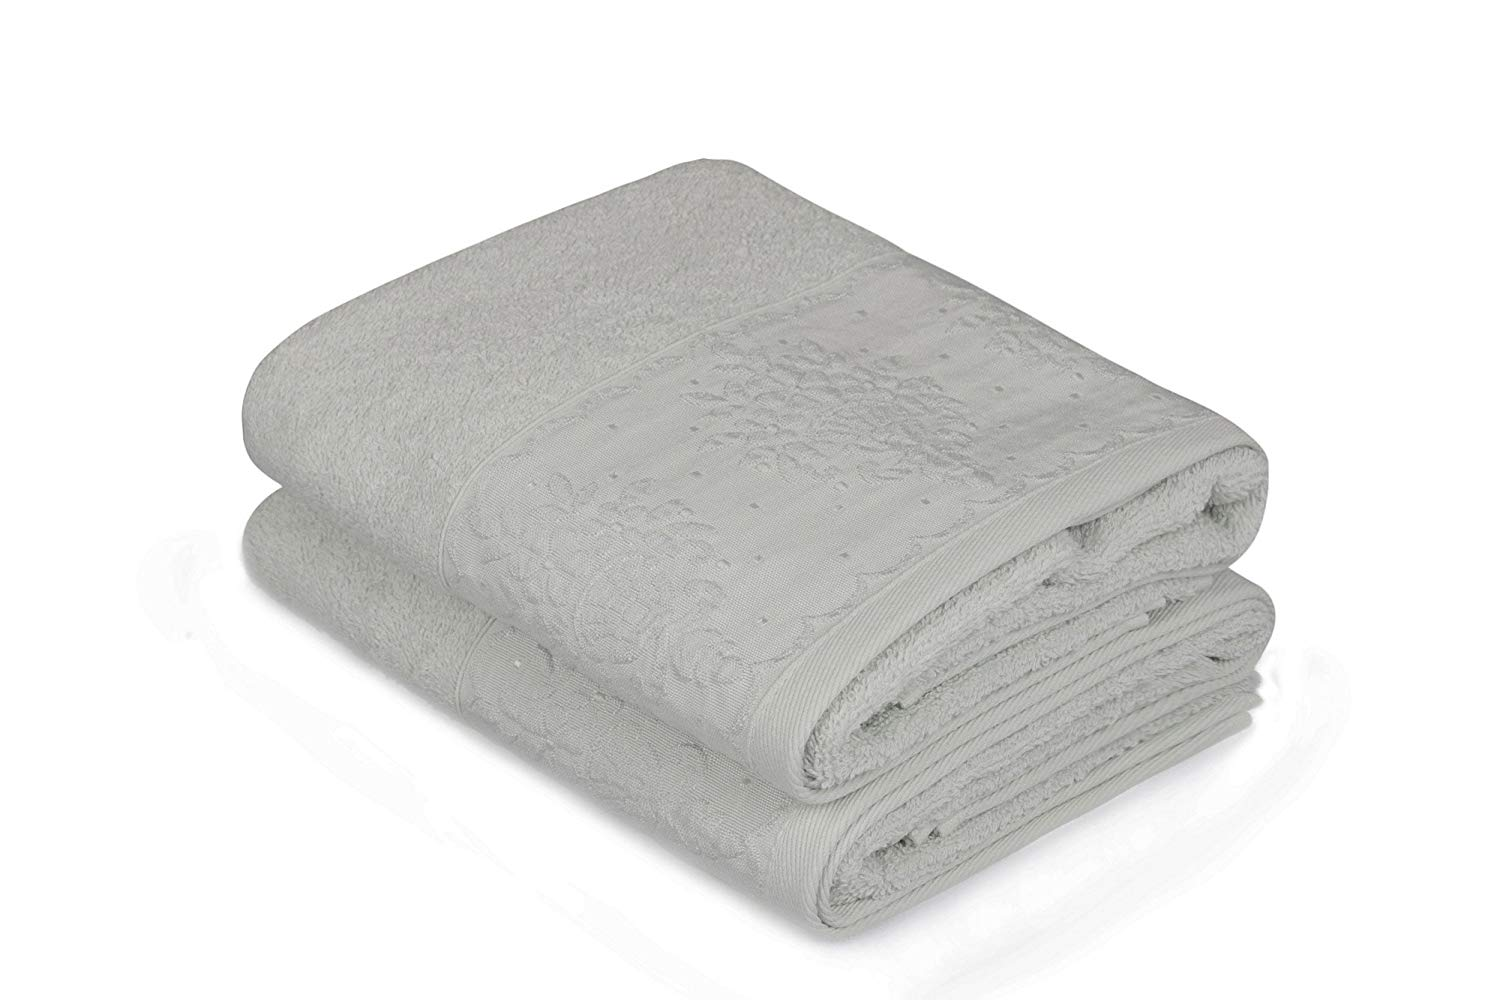 "LaModaHome 2 Pcs Hand Towel Set Premium Quality (19.7"" x 35.4"") 100% Cotton Hotel Quality/Motif Design Plant Leaf Flower Grey Background/Soft Machine Washable Quick Dry Highly Absorbent"